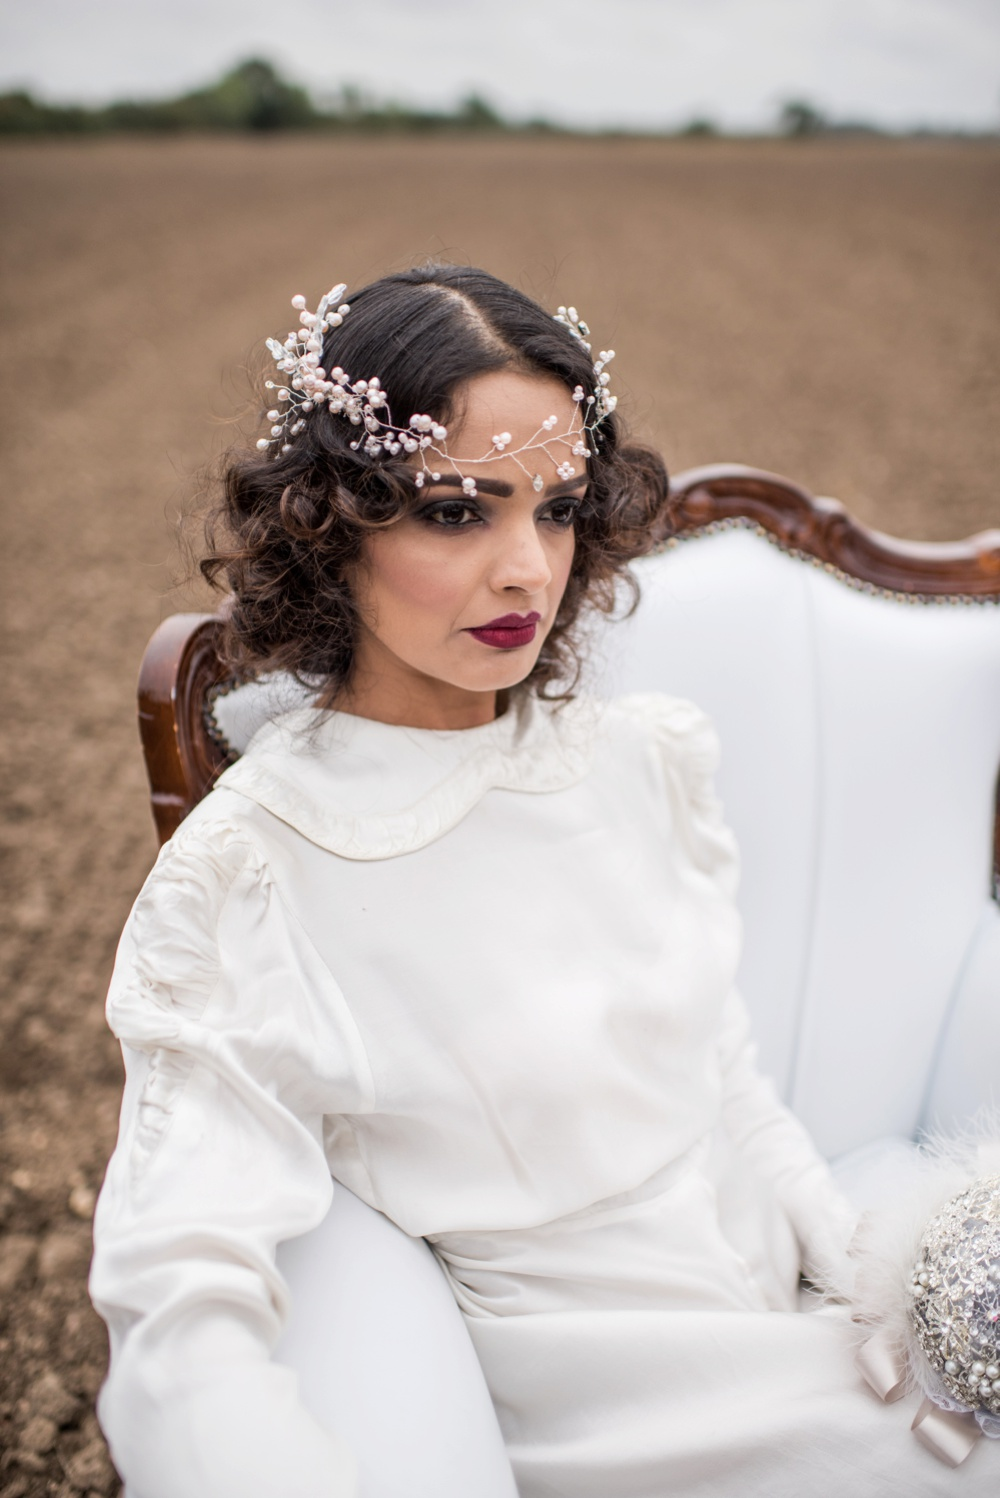 fine-art-wedding-photographer-jane-beadnell-photography-bridal-accessories-bespoke-vintage-castle-33